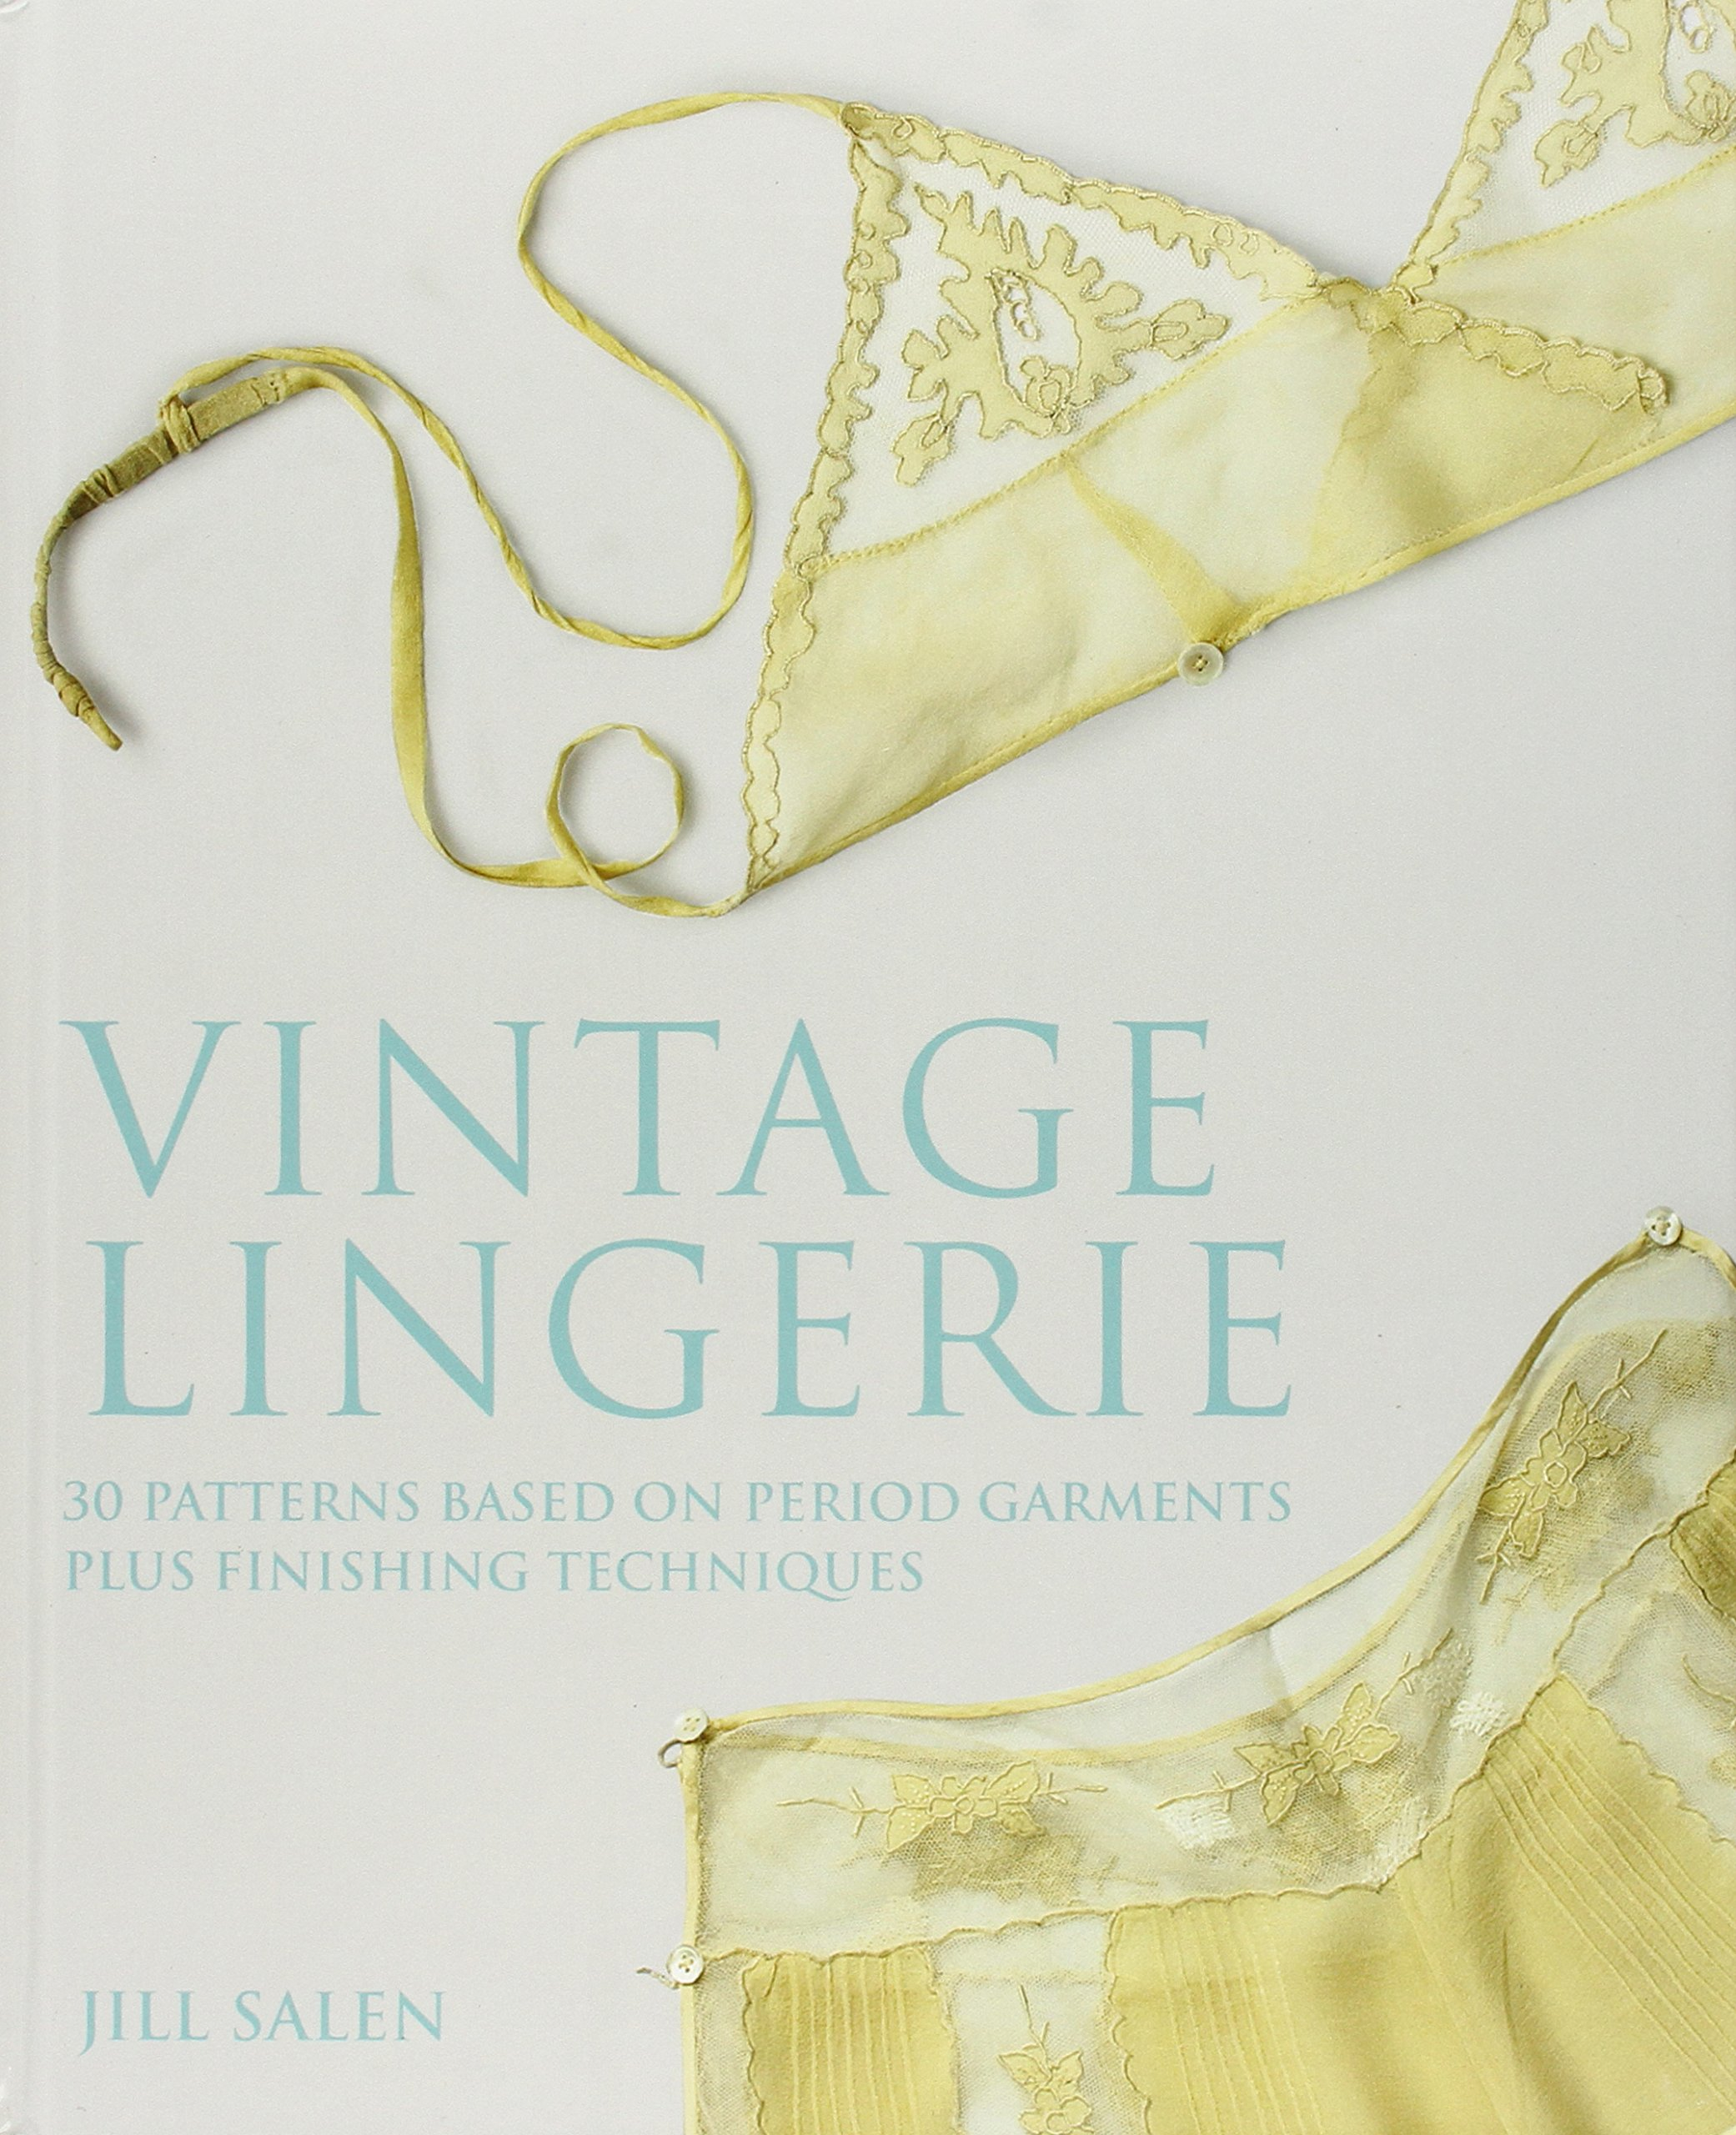 Vintage Lingerie: 30 Patterns Based on Period Garments Plus Finishing Techniques: Amazon.es: Jill Salen: Libros en idiomas extranjeros